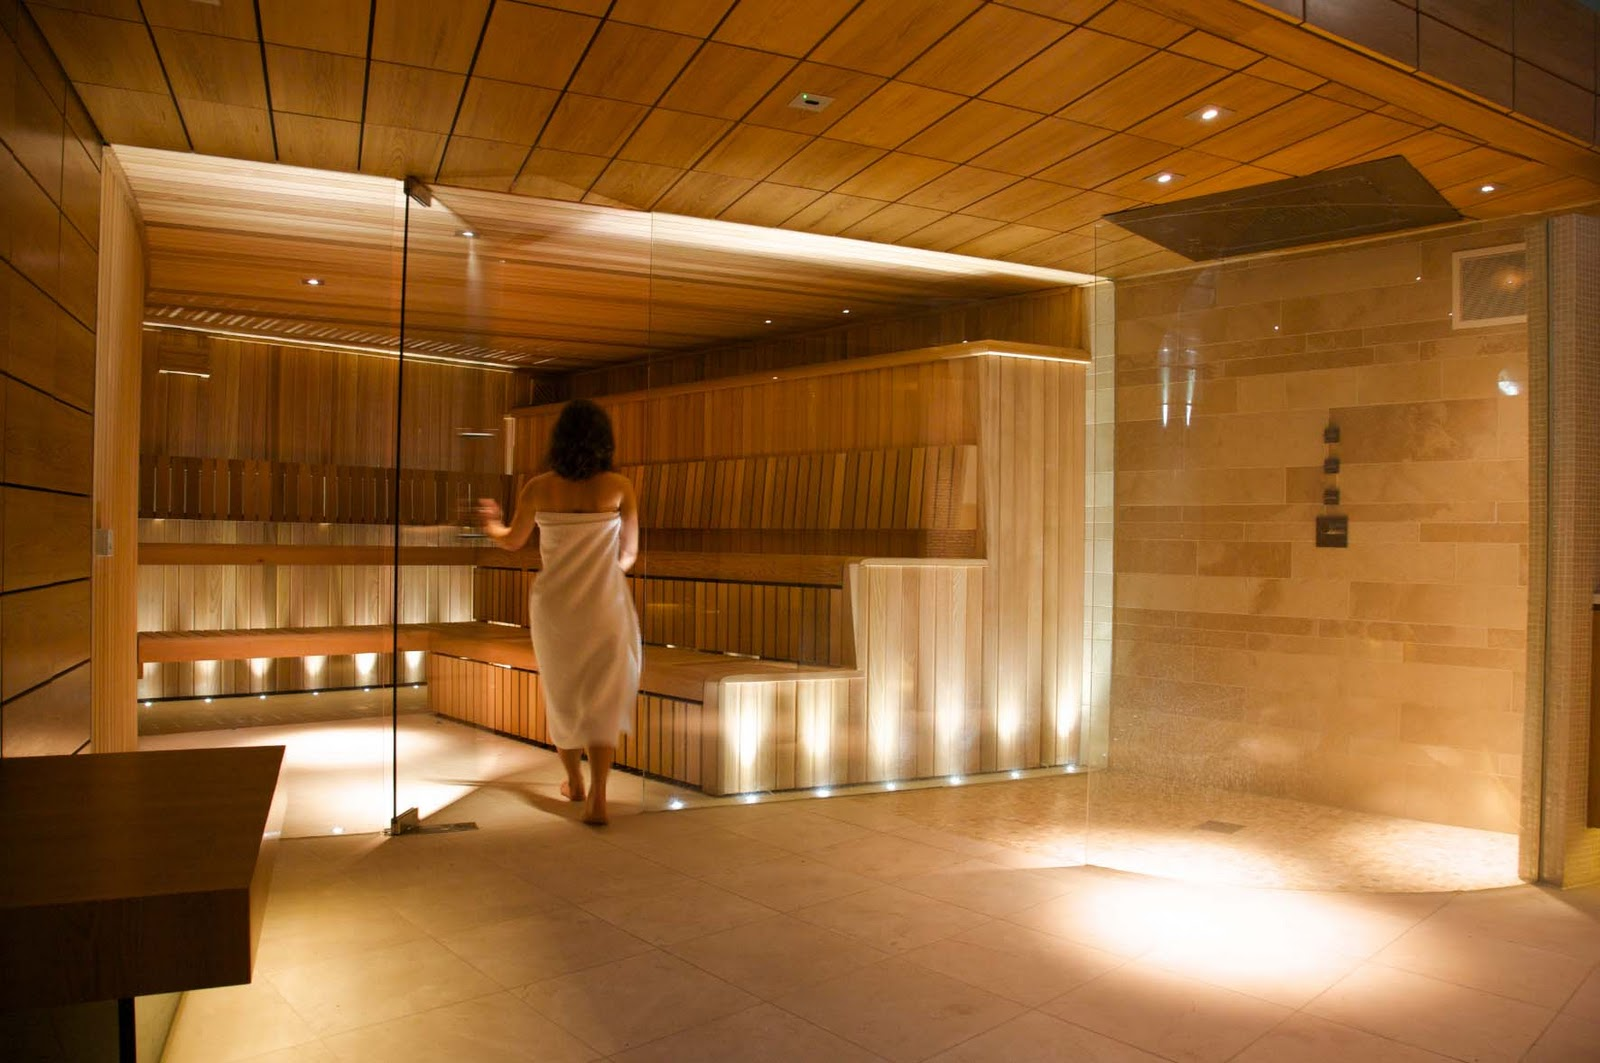 Spa Steam Room Designs Joy Studio Design Gallery Best